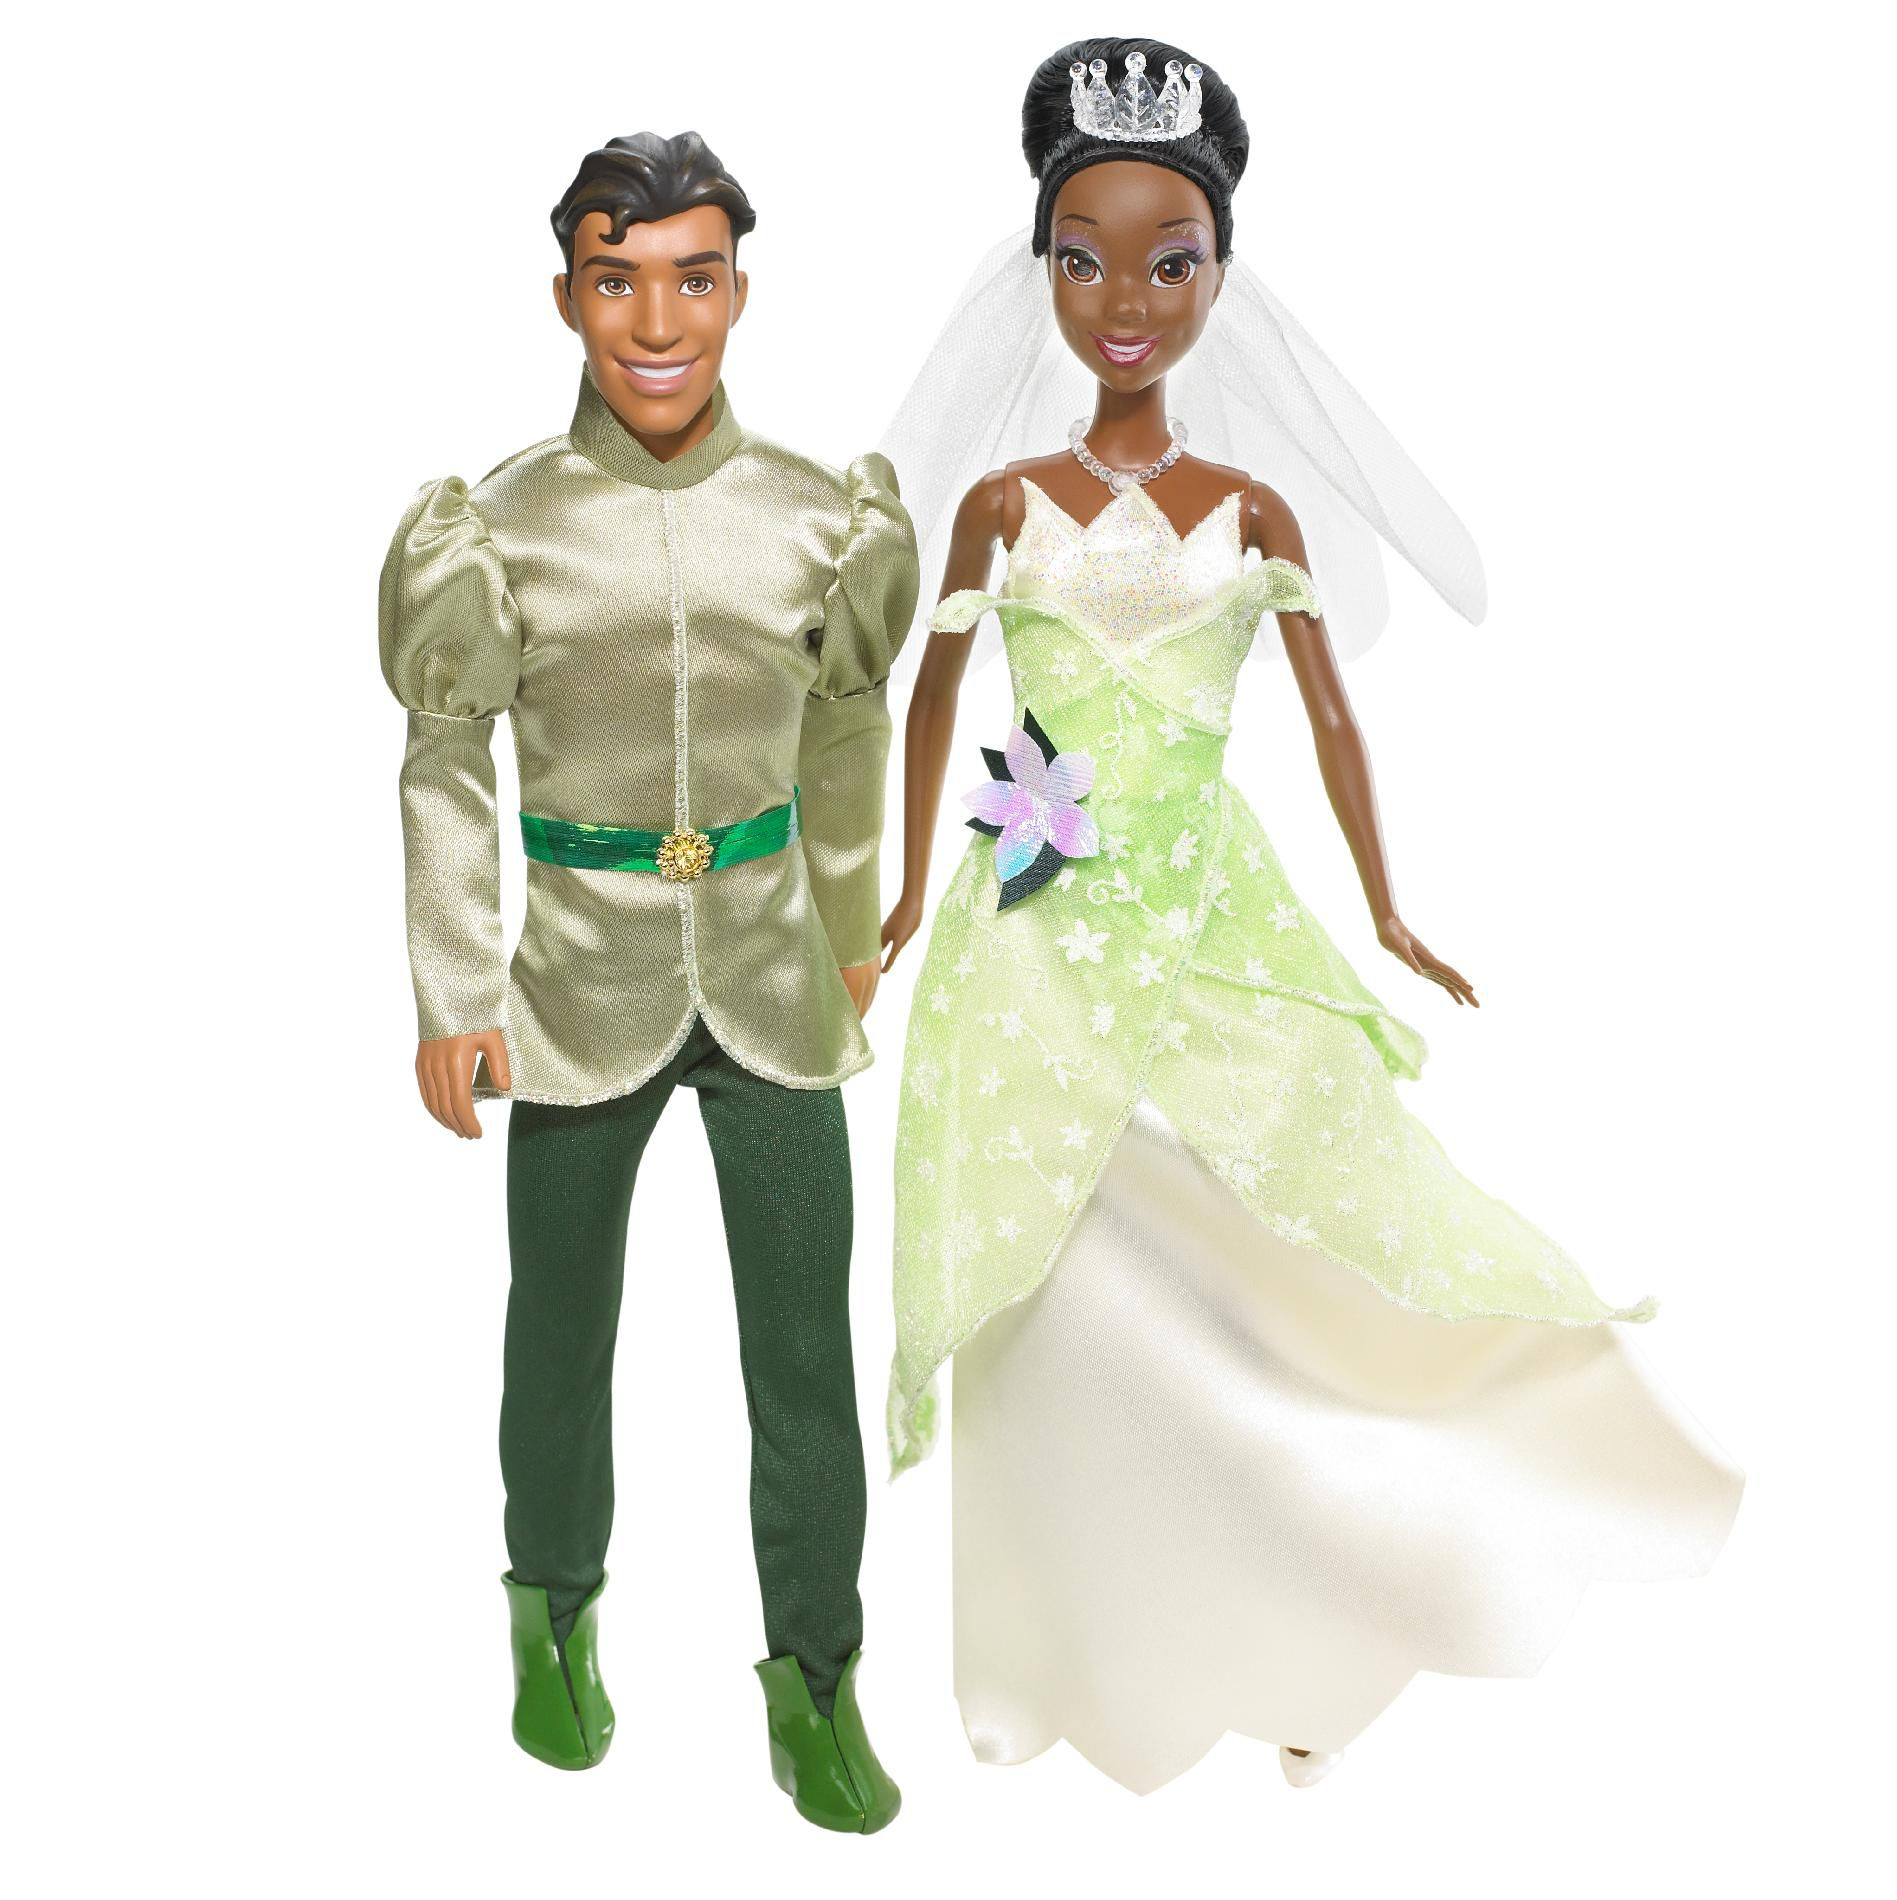 Disney Princess & Prince TIANA & NAVEEN (KMART EXCLUSIVE)                                                                        at mygofer.com